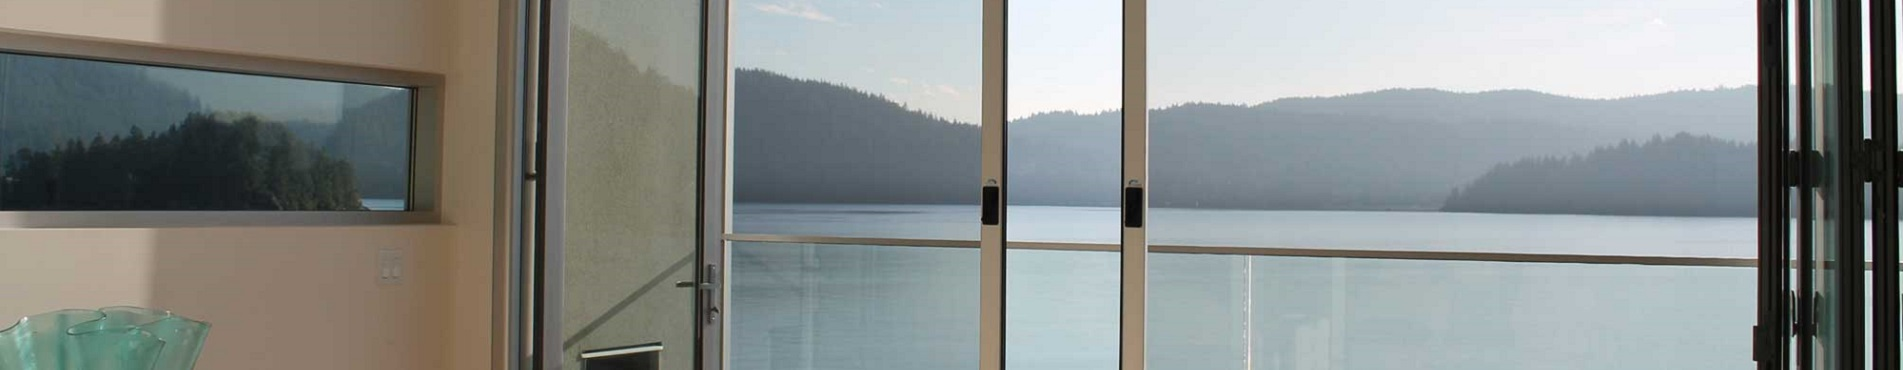 retractable screen doors Utah